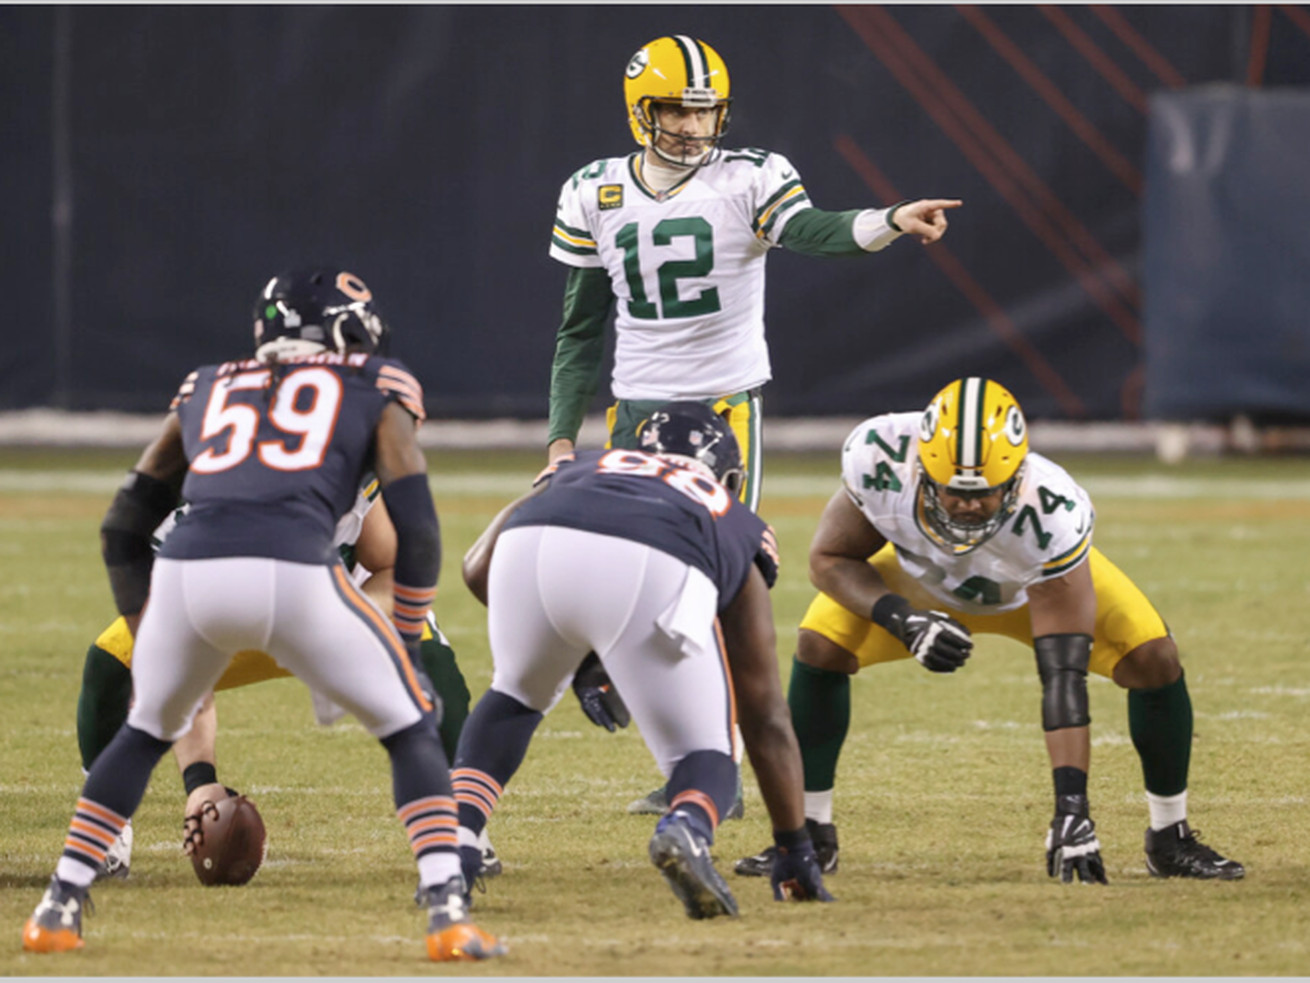 Aaron Rodgers is 21-5 against the Bears.